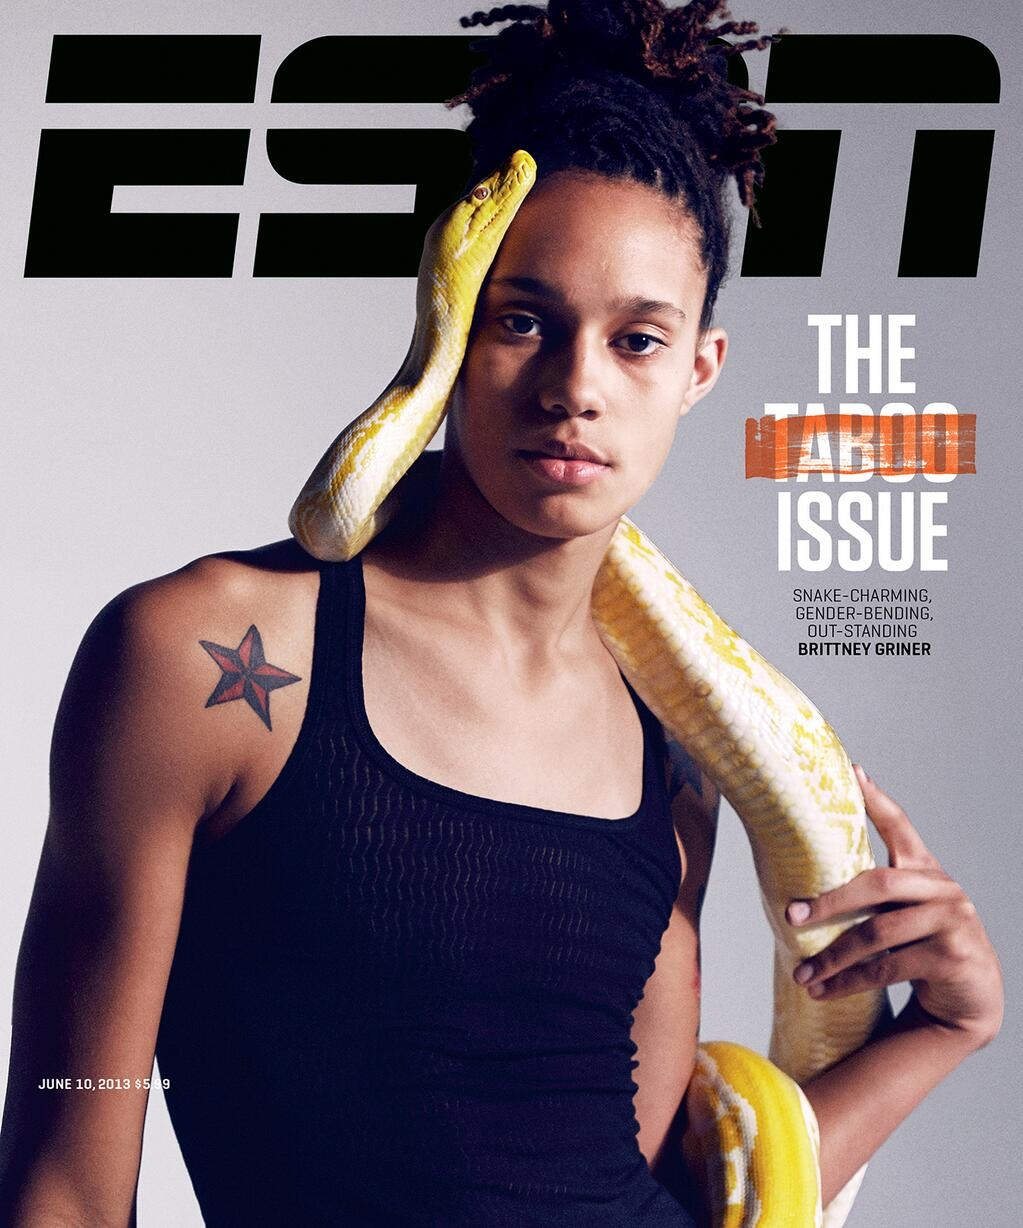 Brittney Griner on cover of ESPN